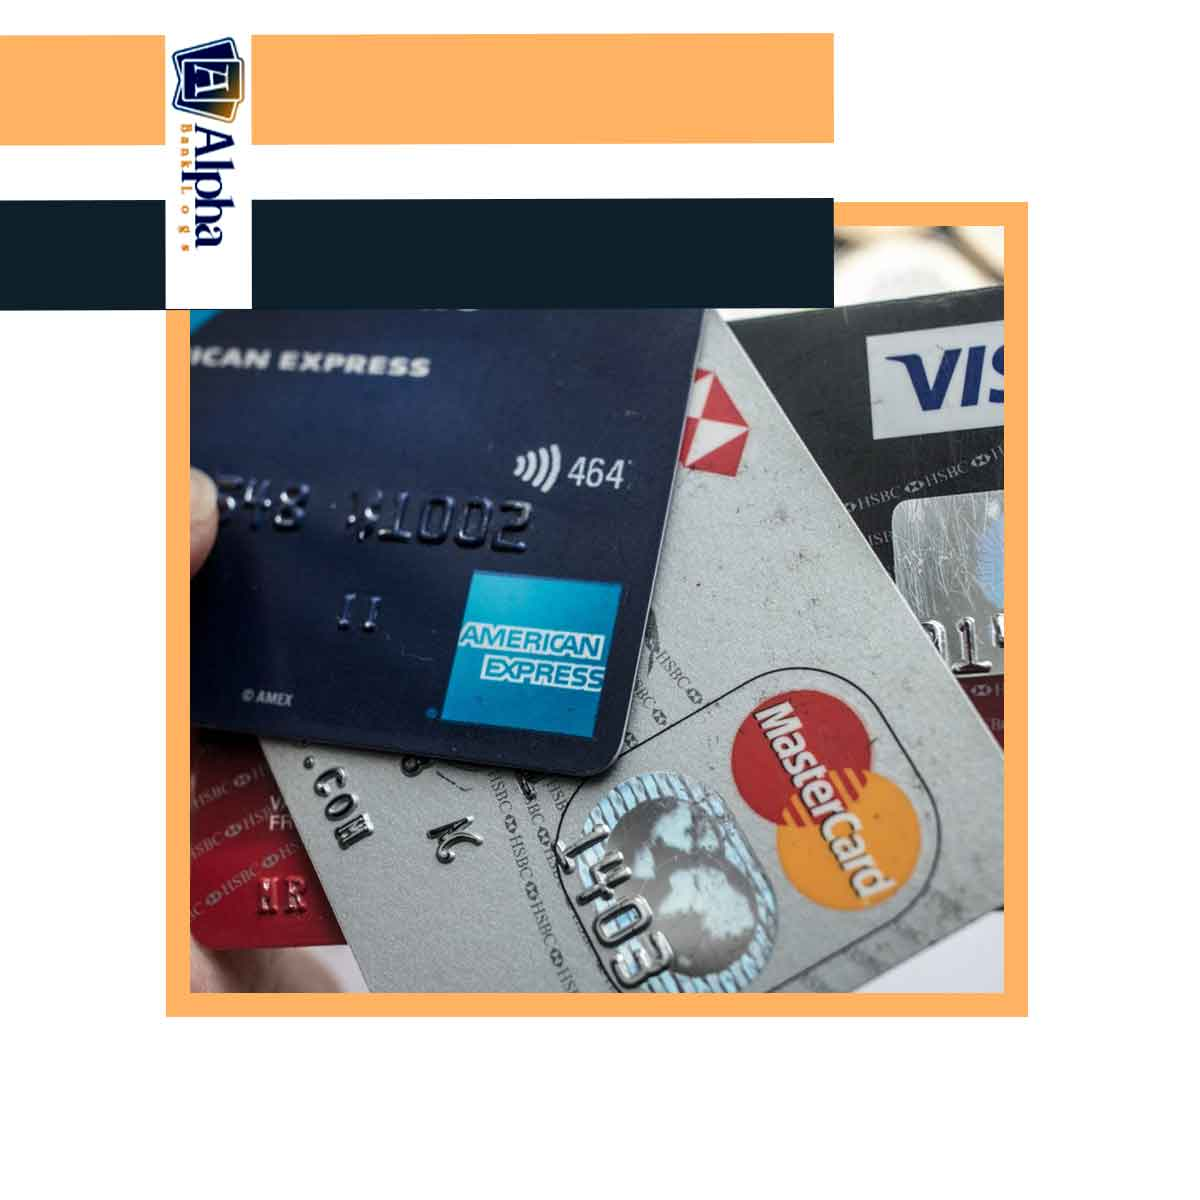 UK CVV Fullz with sort code and account number